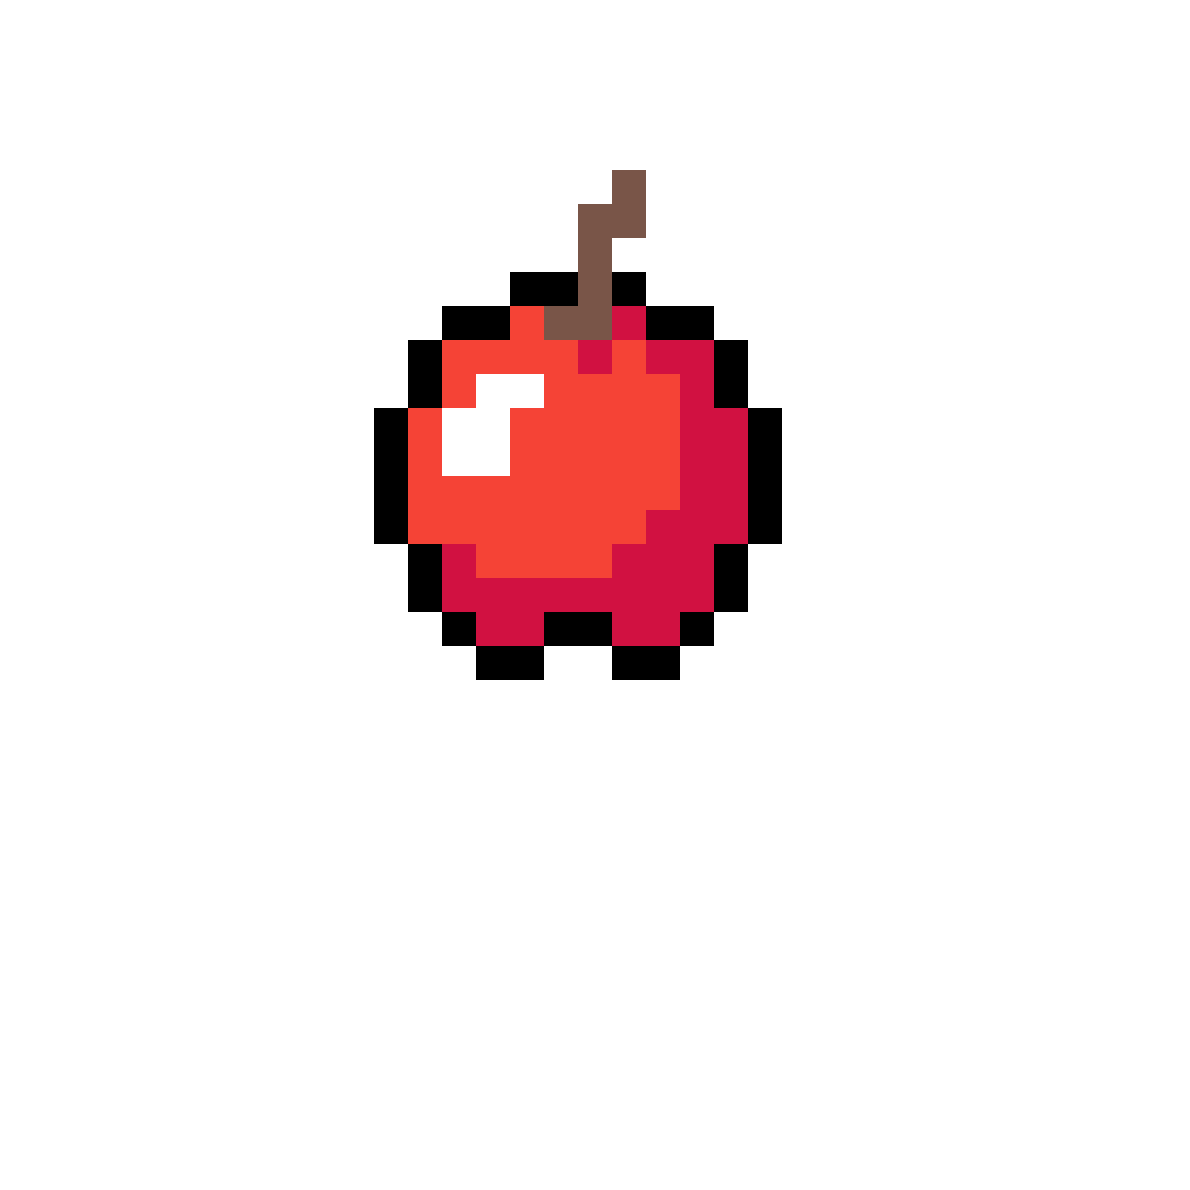 Minecraft apple png. Pixilart by angelinaawesome